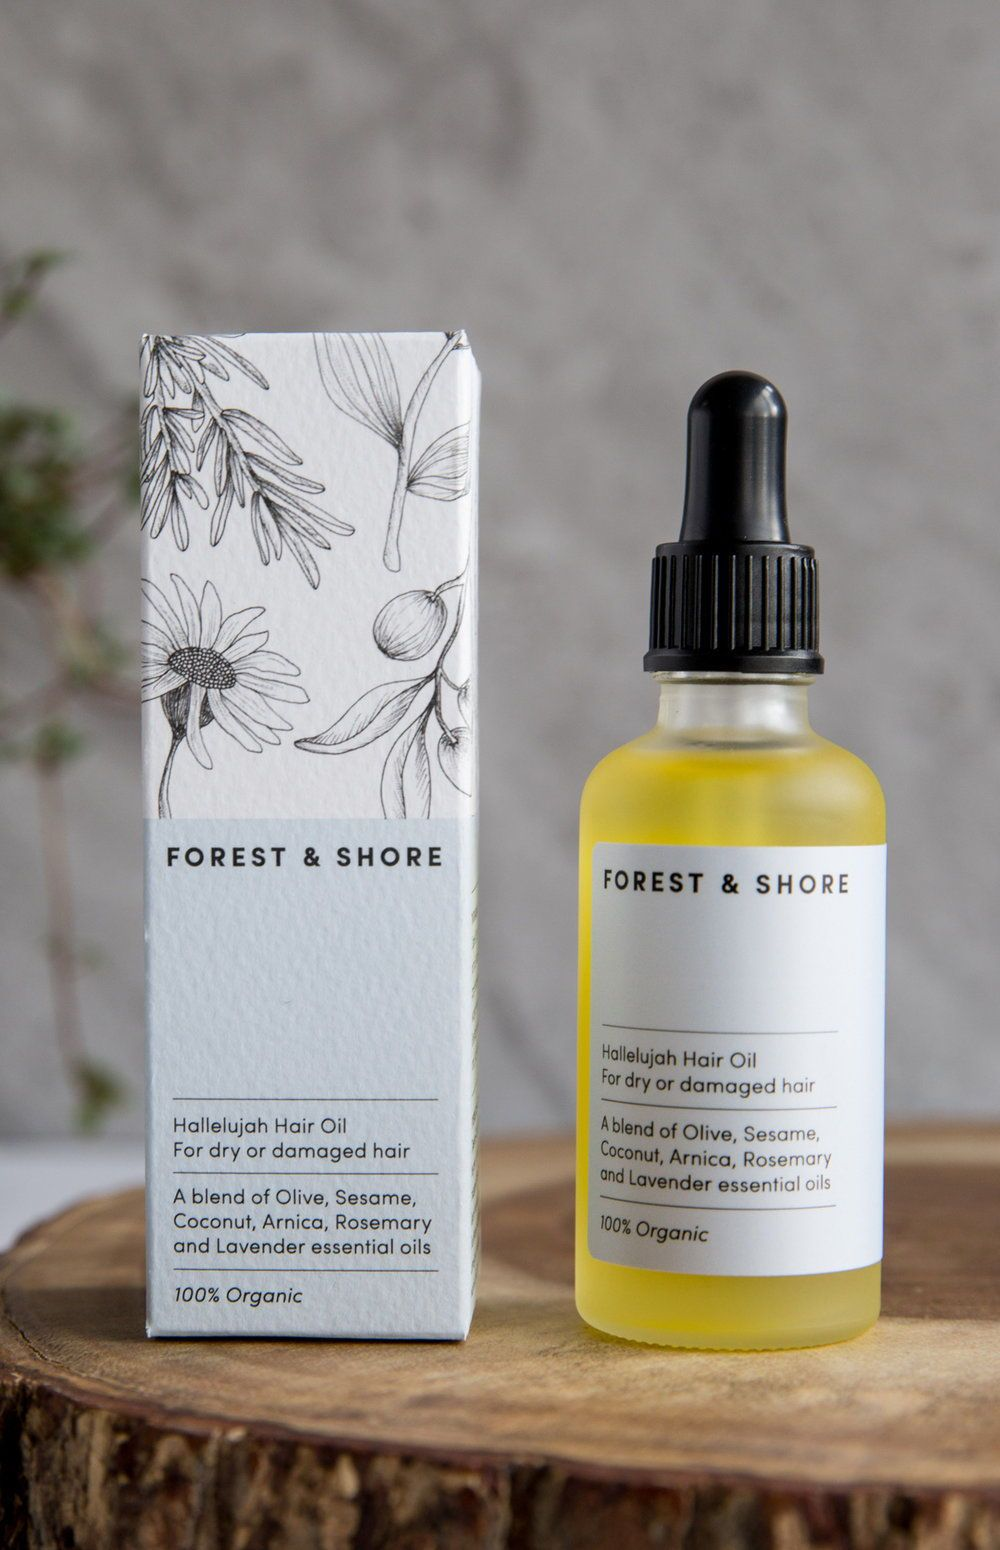 The Beautiful Feminine Packaging Of Forest Shore Skincare